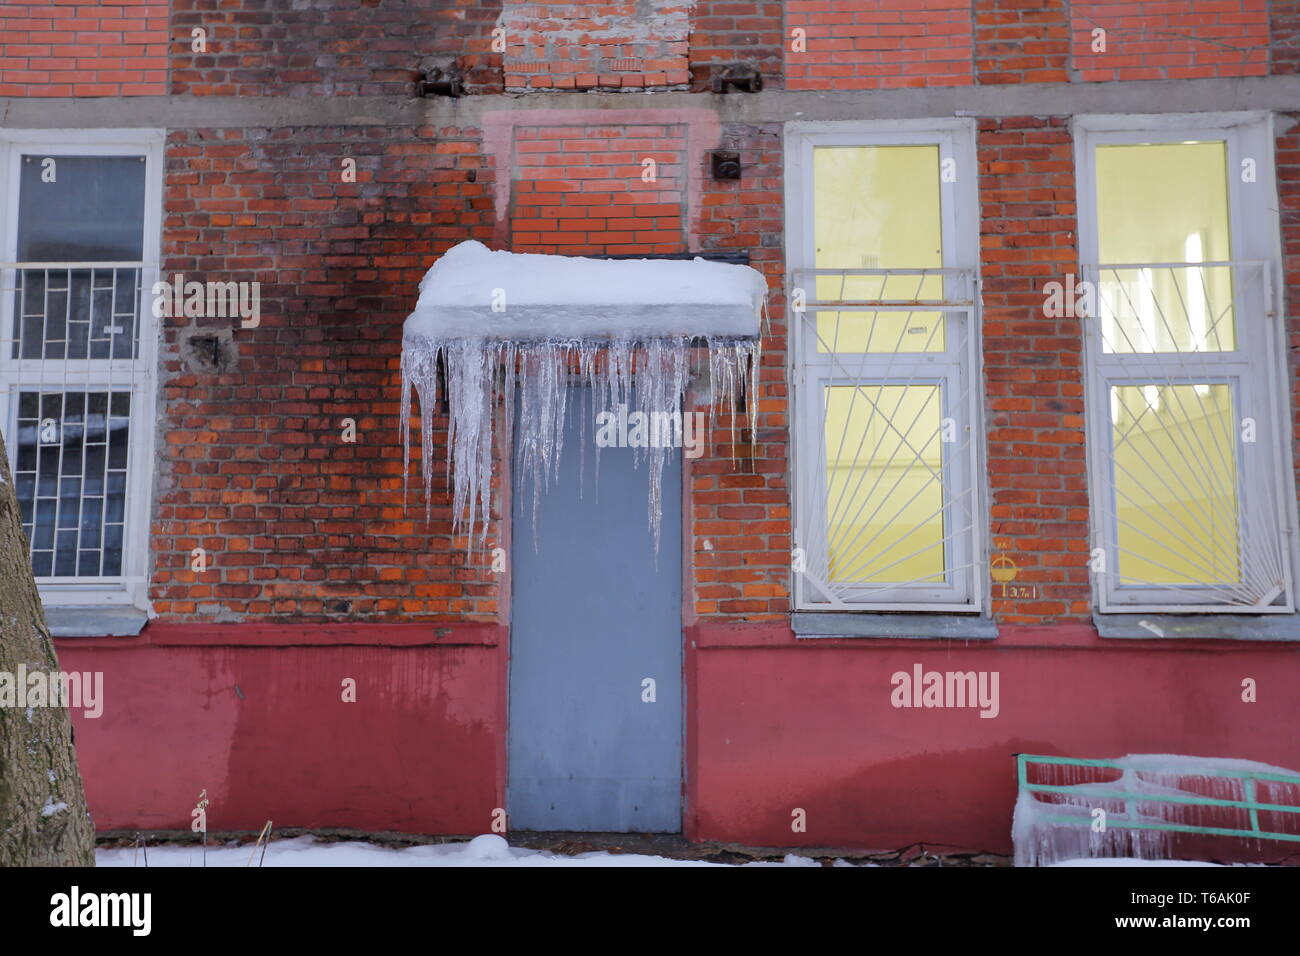 Icicles on the cornice of the building - Stock Image